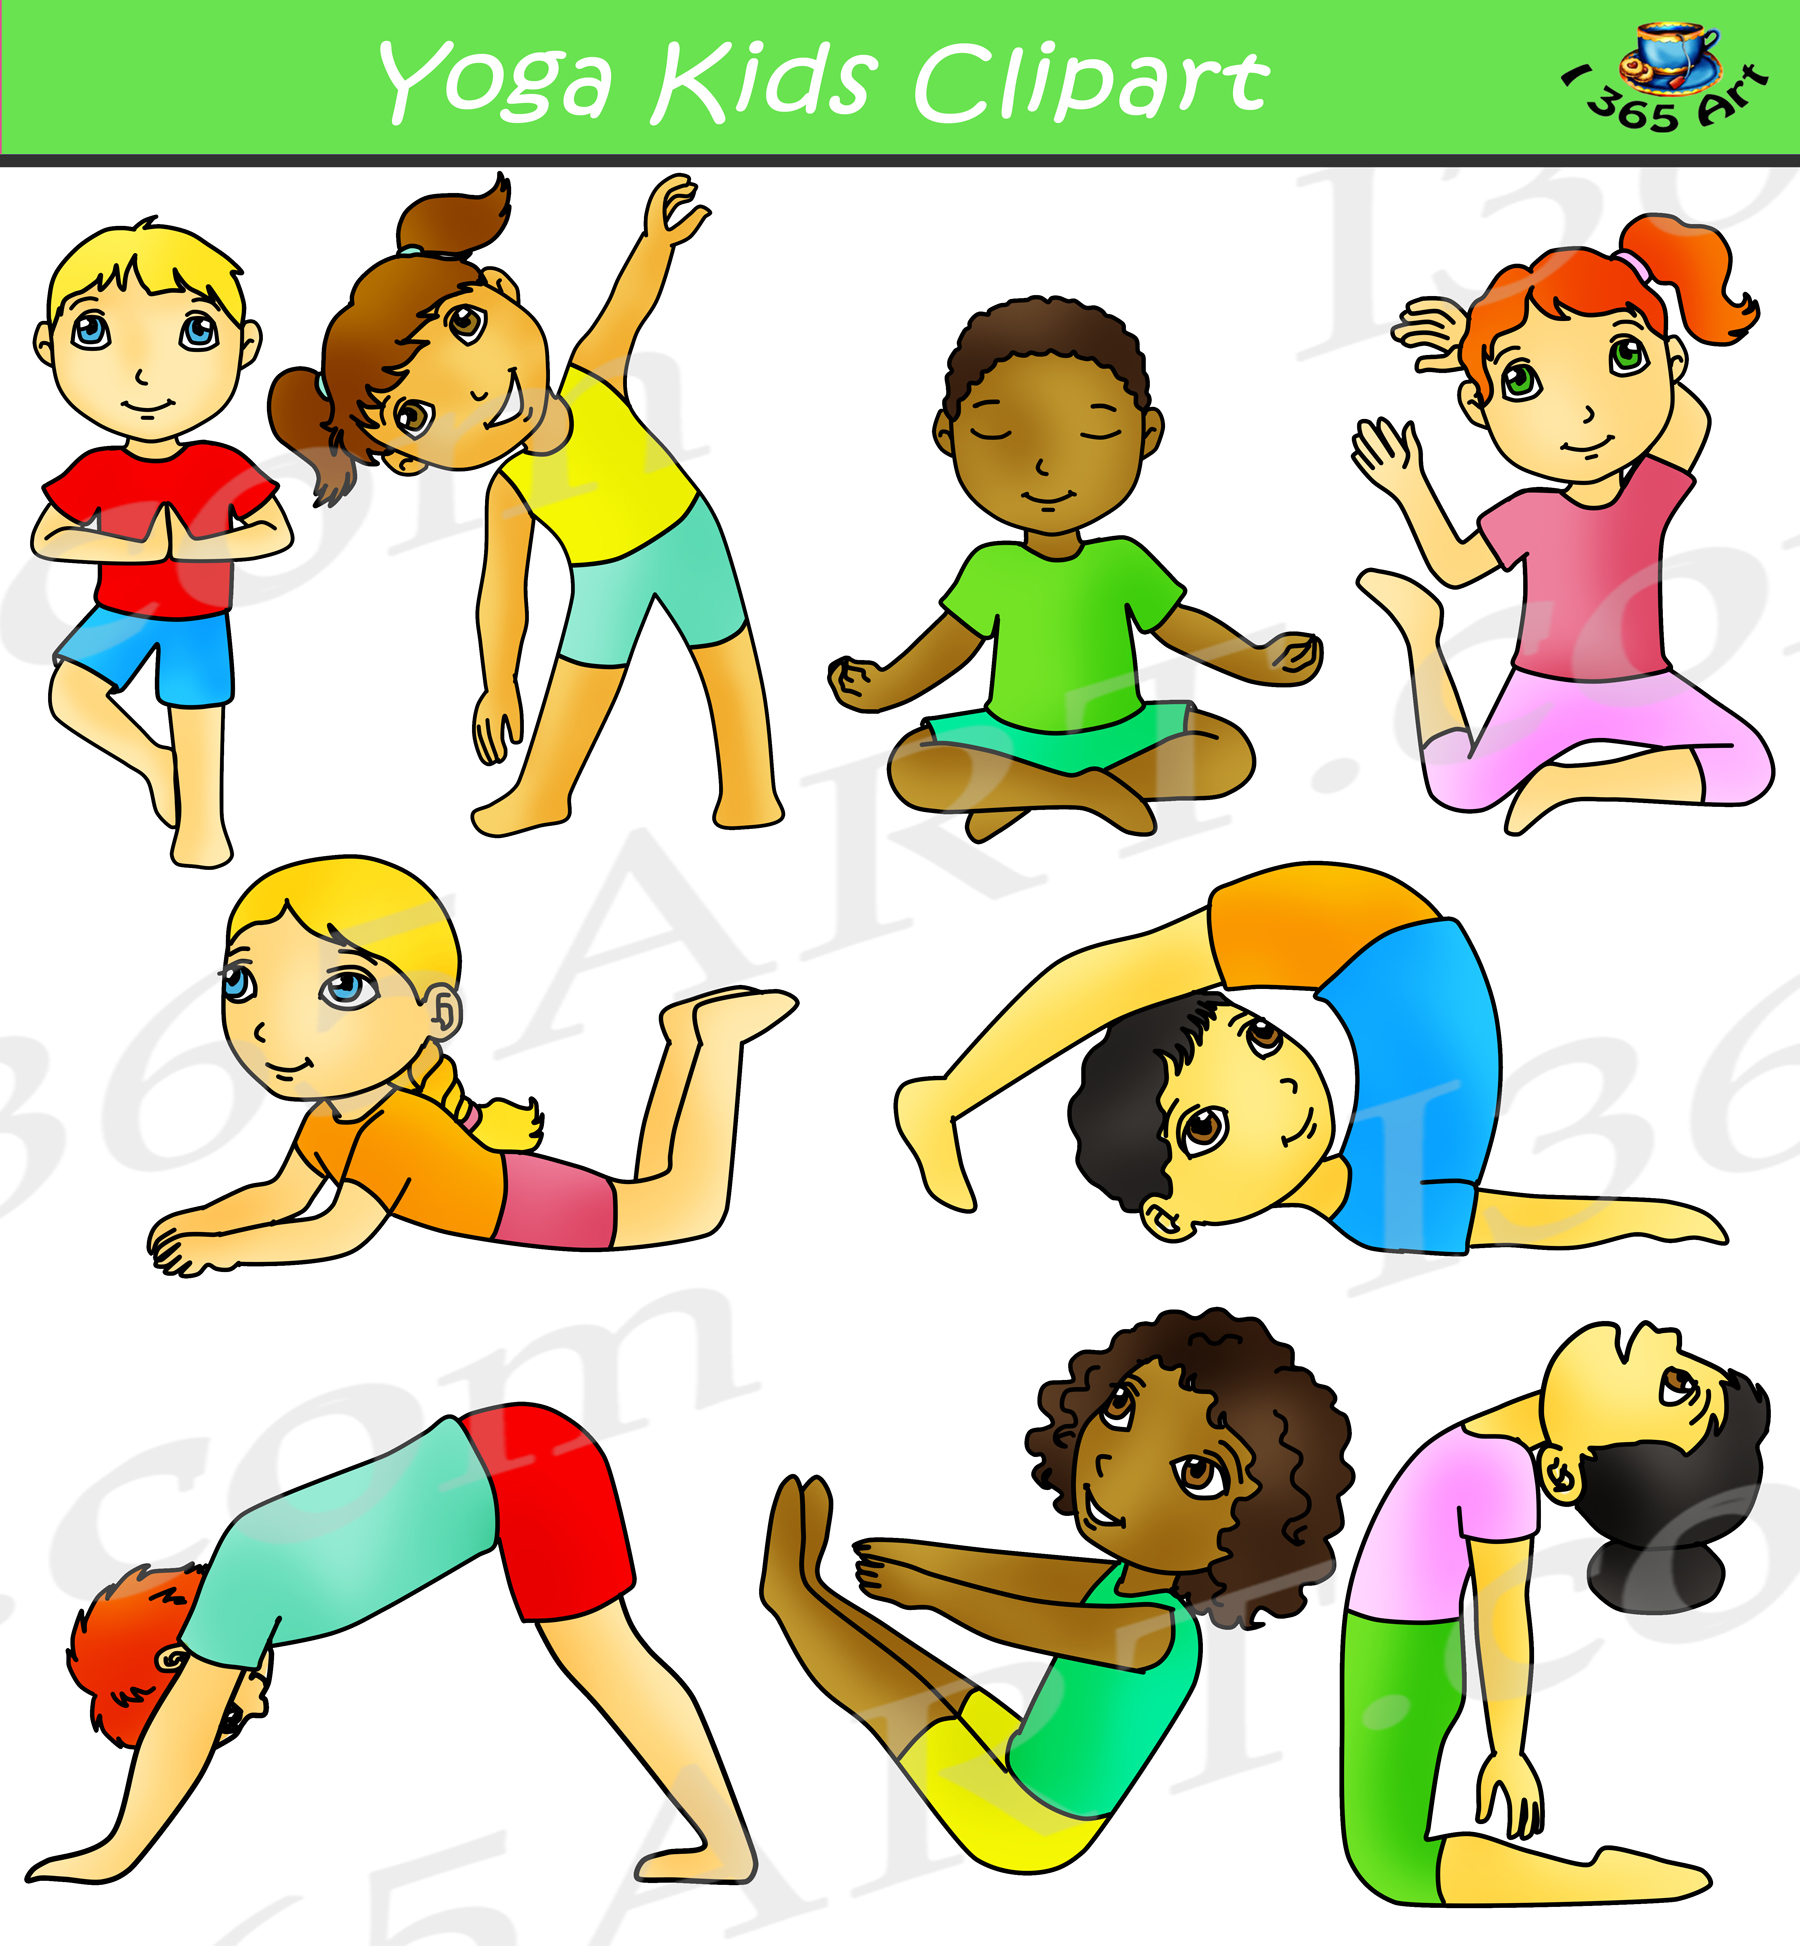 Kids Yoga Clipart Activity Set.